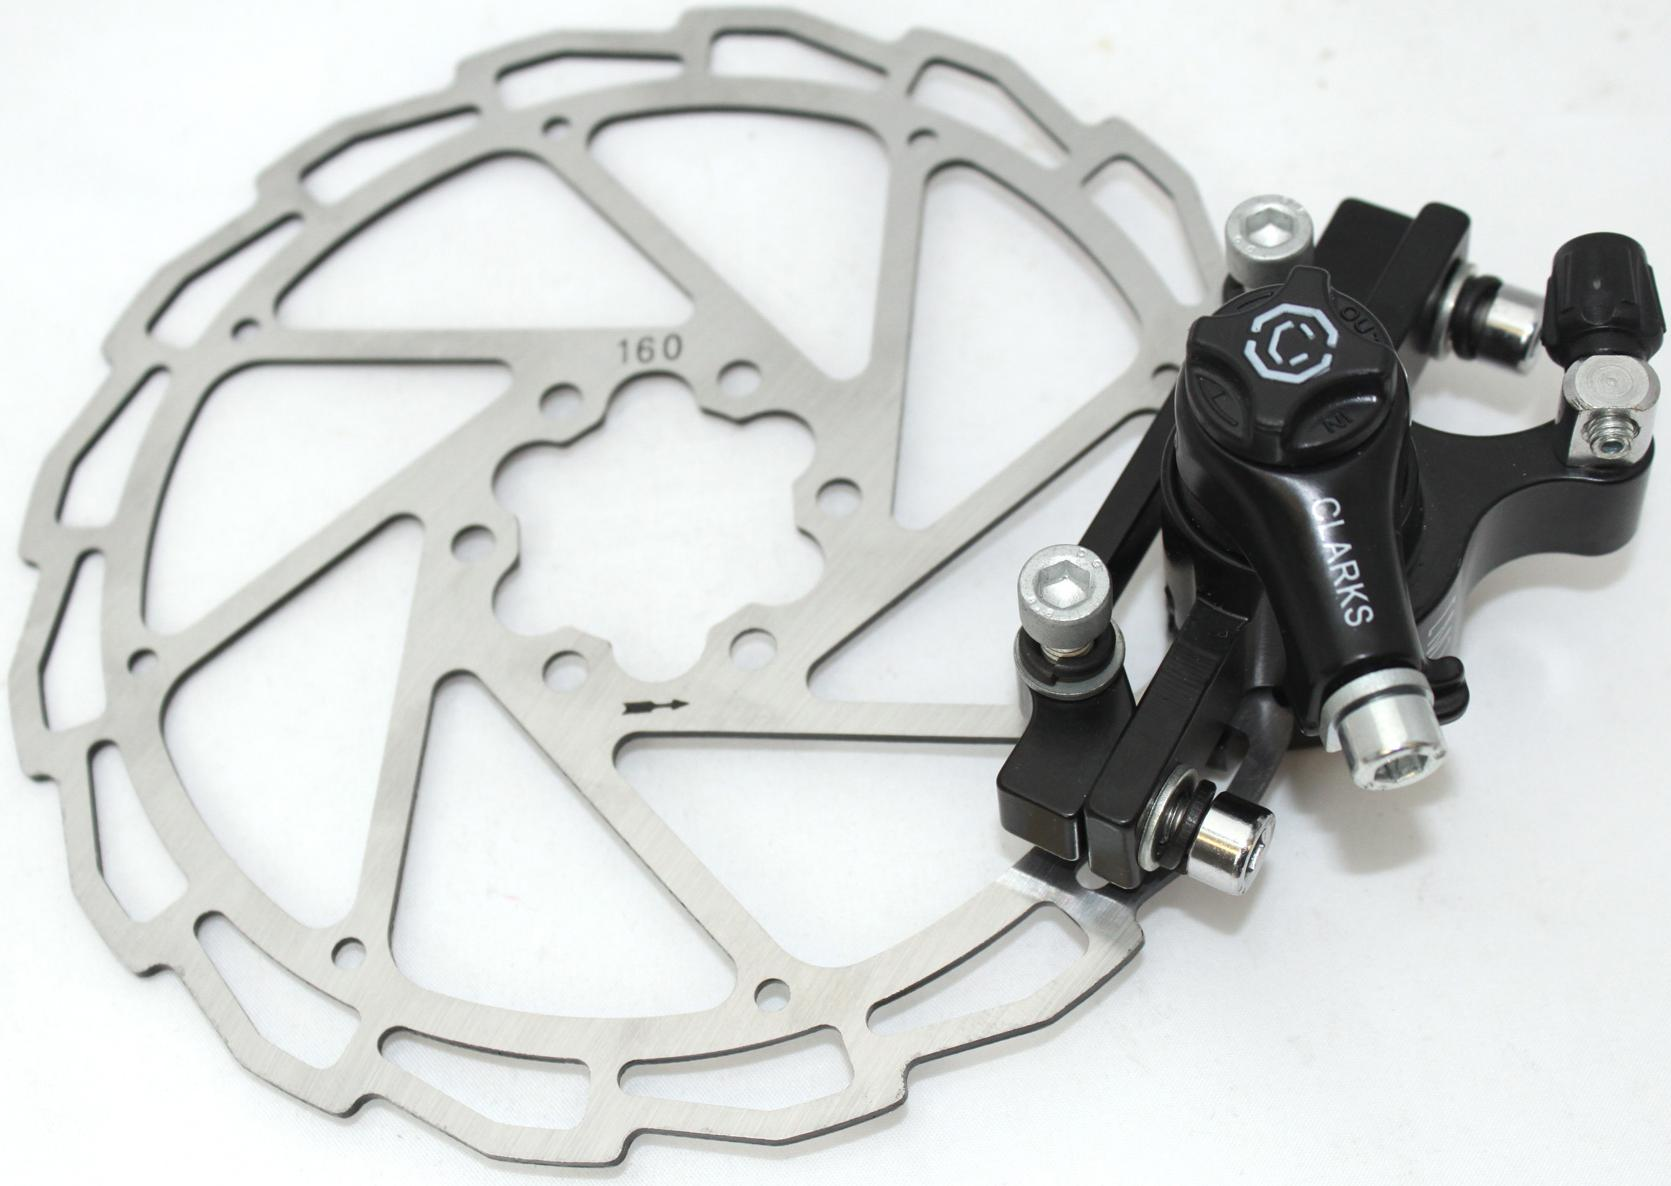 Clarks Mechanical Mountain Bike Brake System - 160Mm